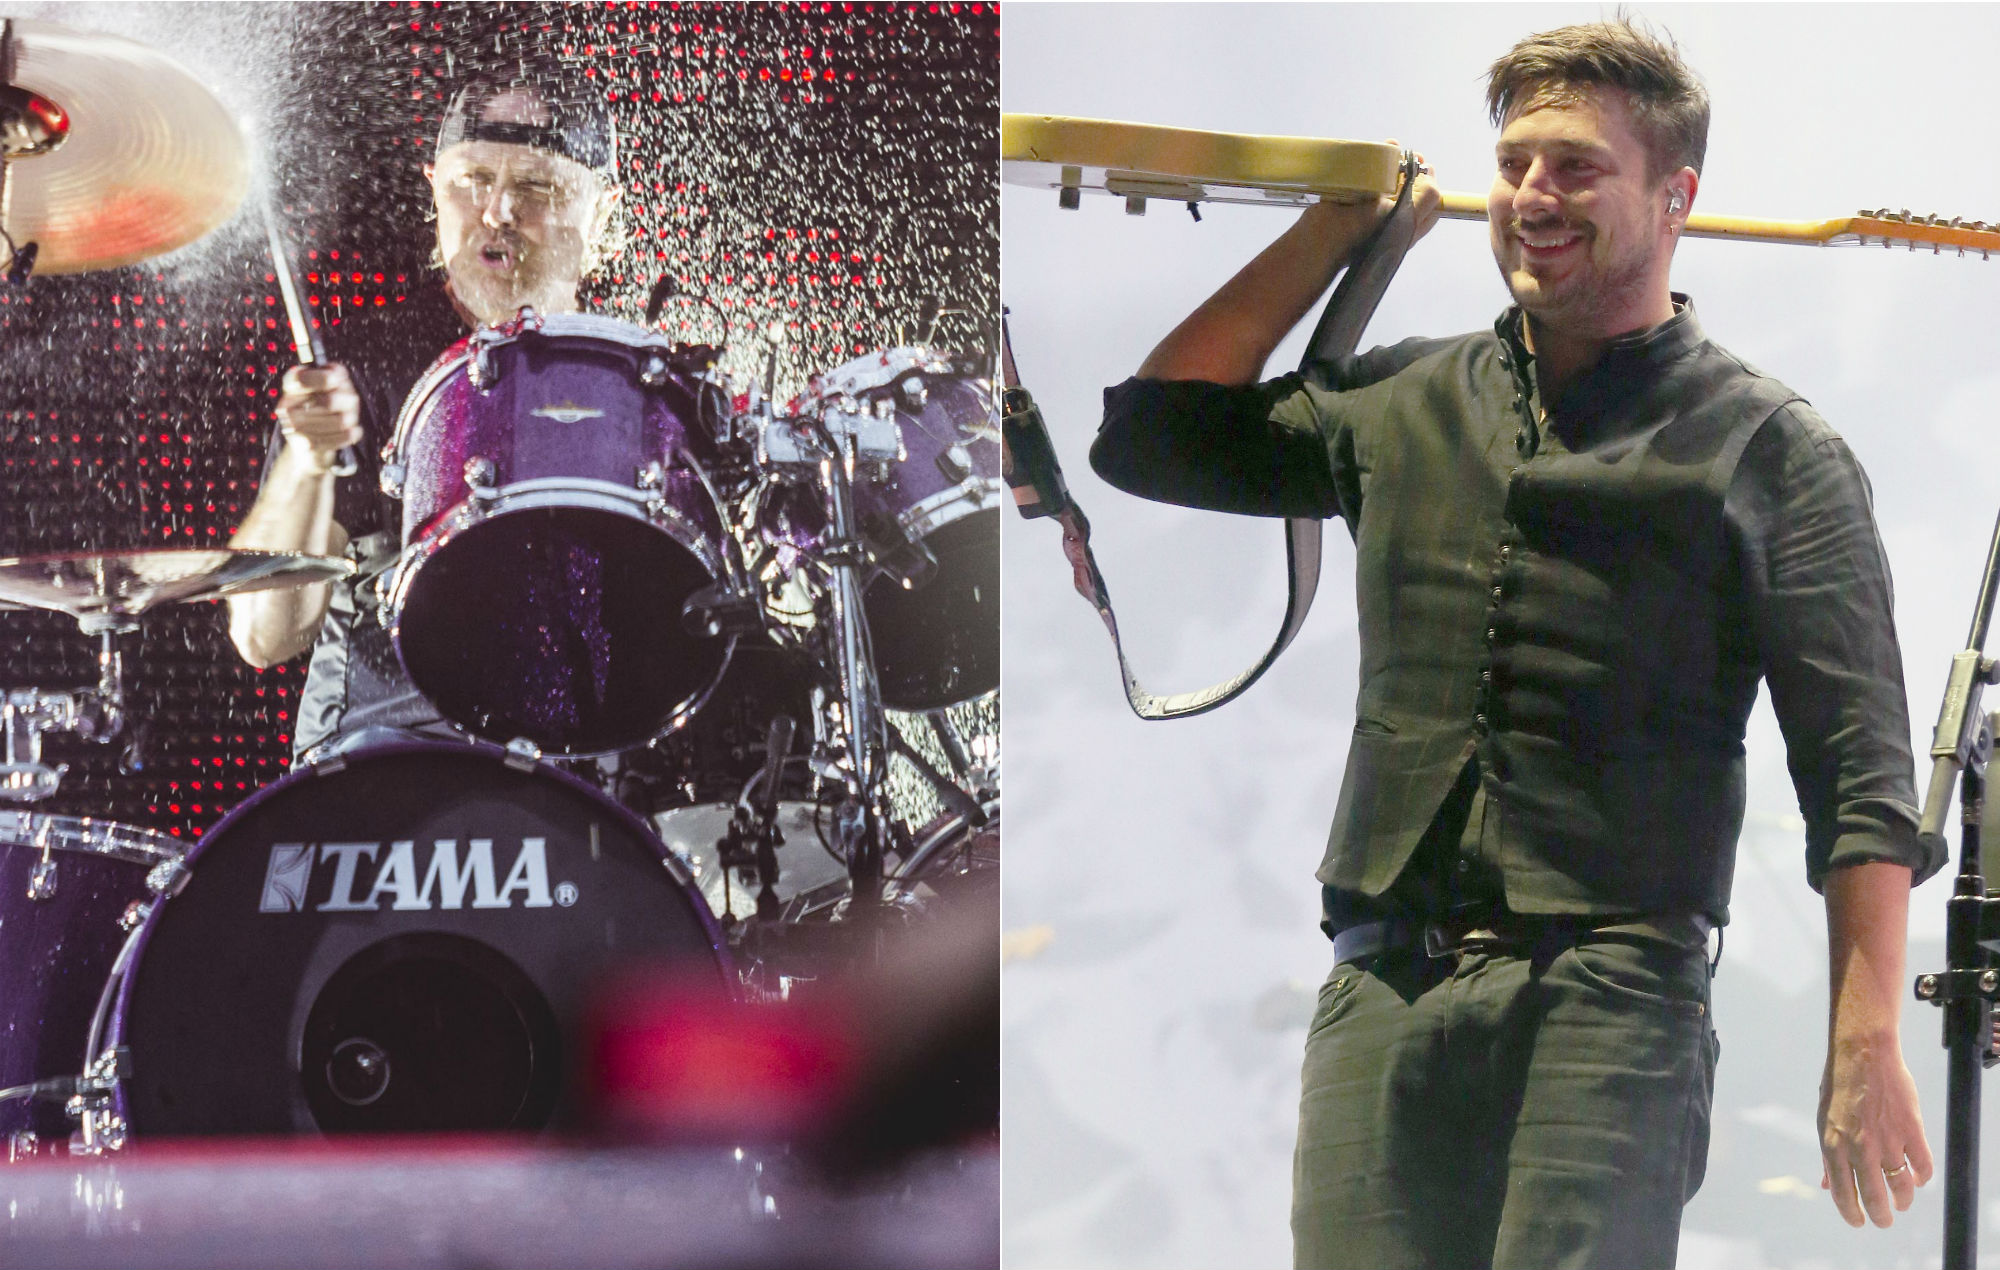 Watch Metallica's Lars Ulrich join Mumford & Sons on stage to perform 'The Wolf'